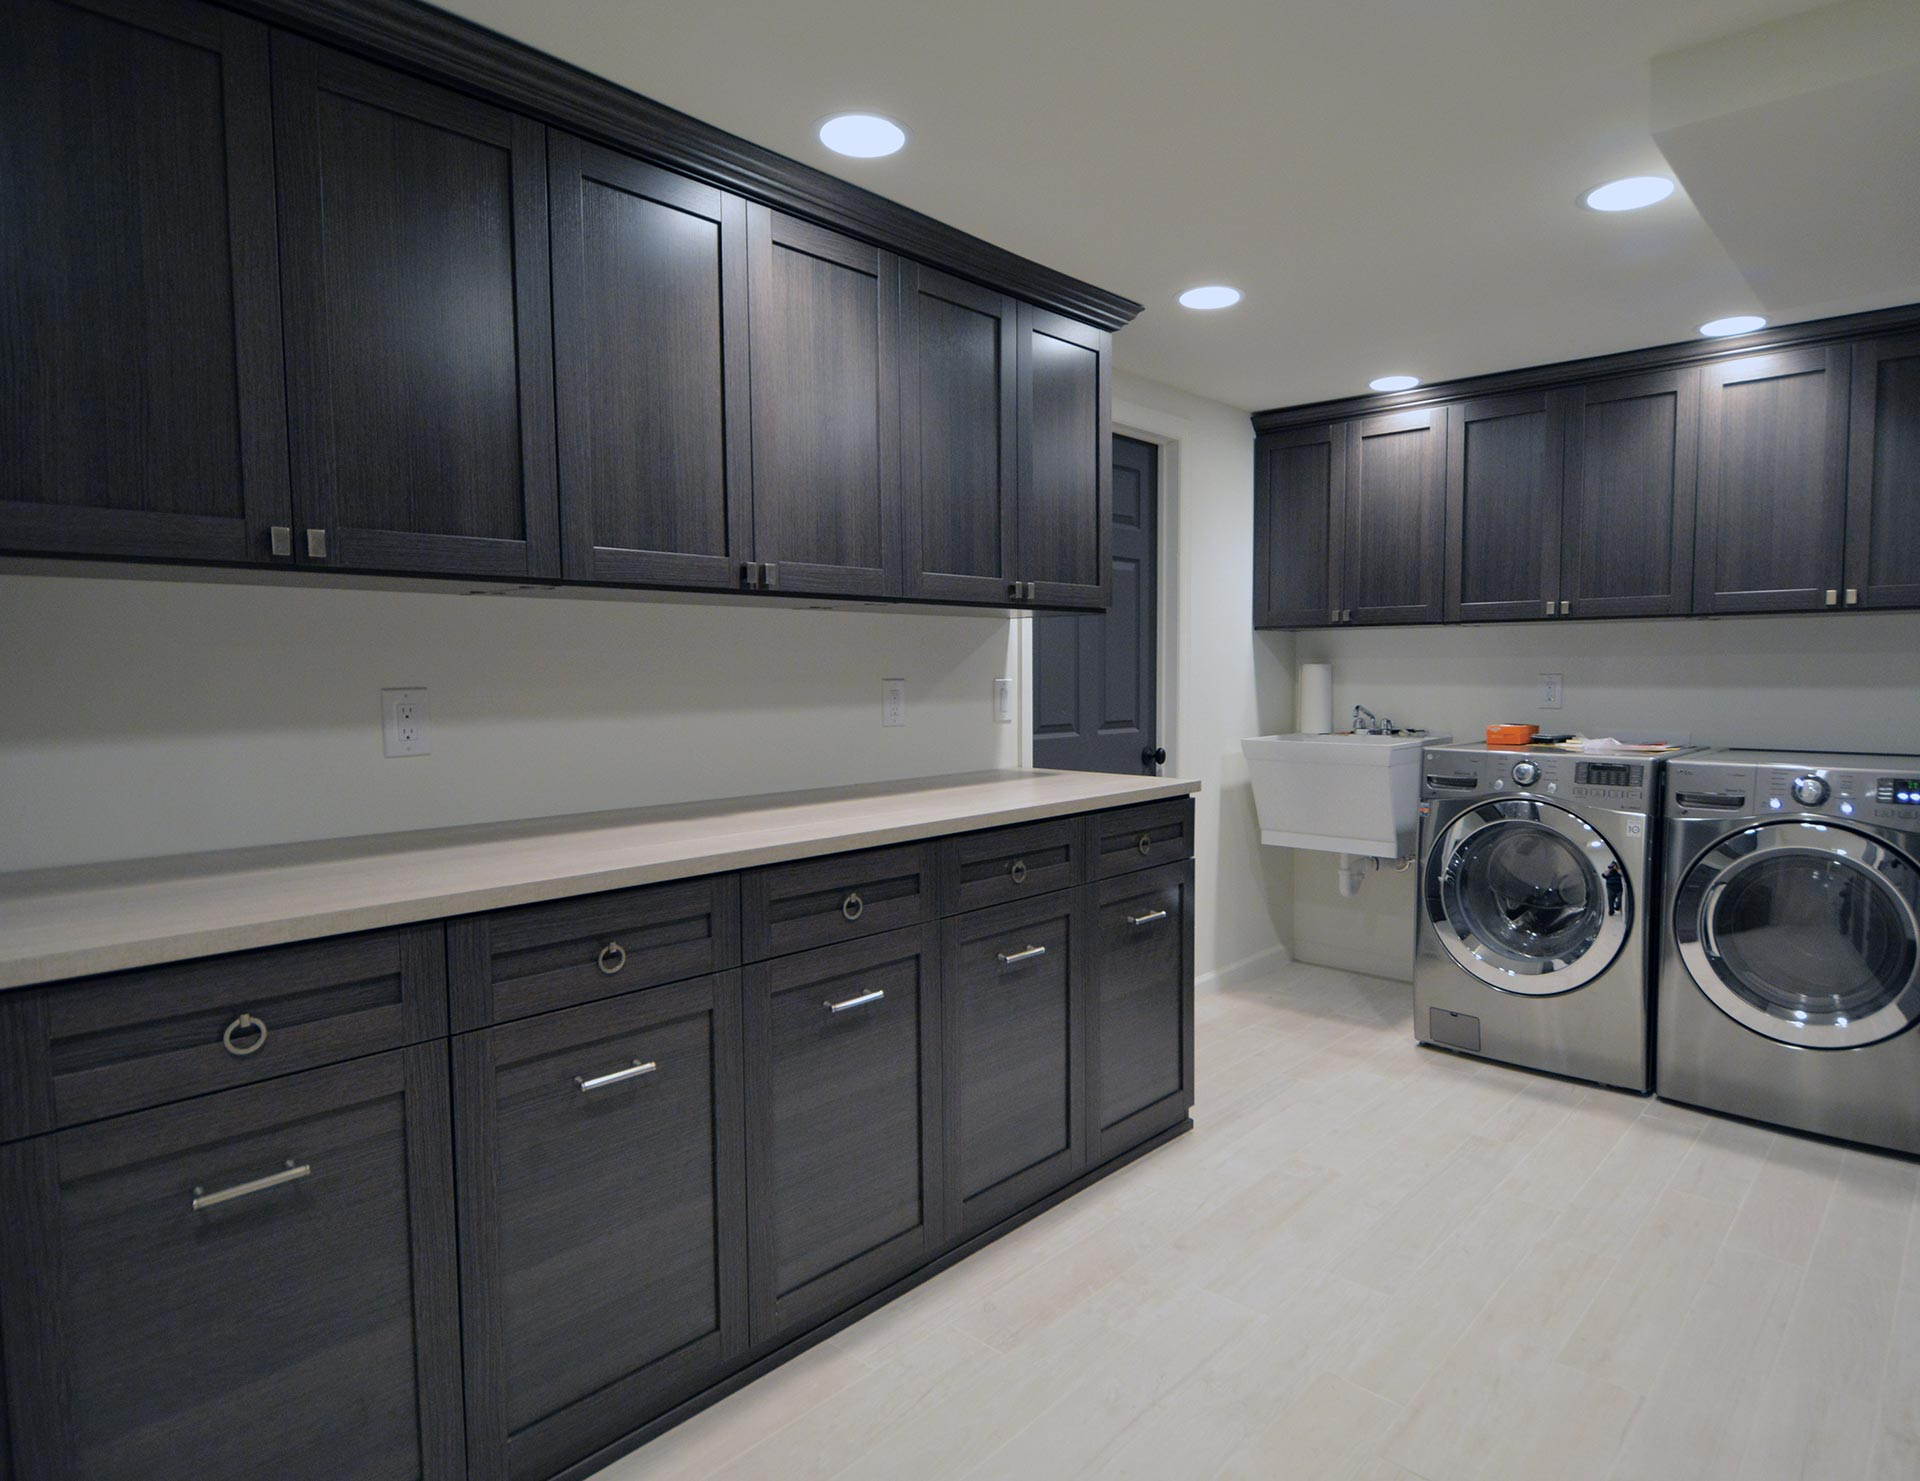 Shaker Cabinet Crown Molding Laundry Room Cabinets & Storage Ideas | California Closets